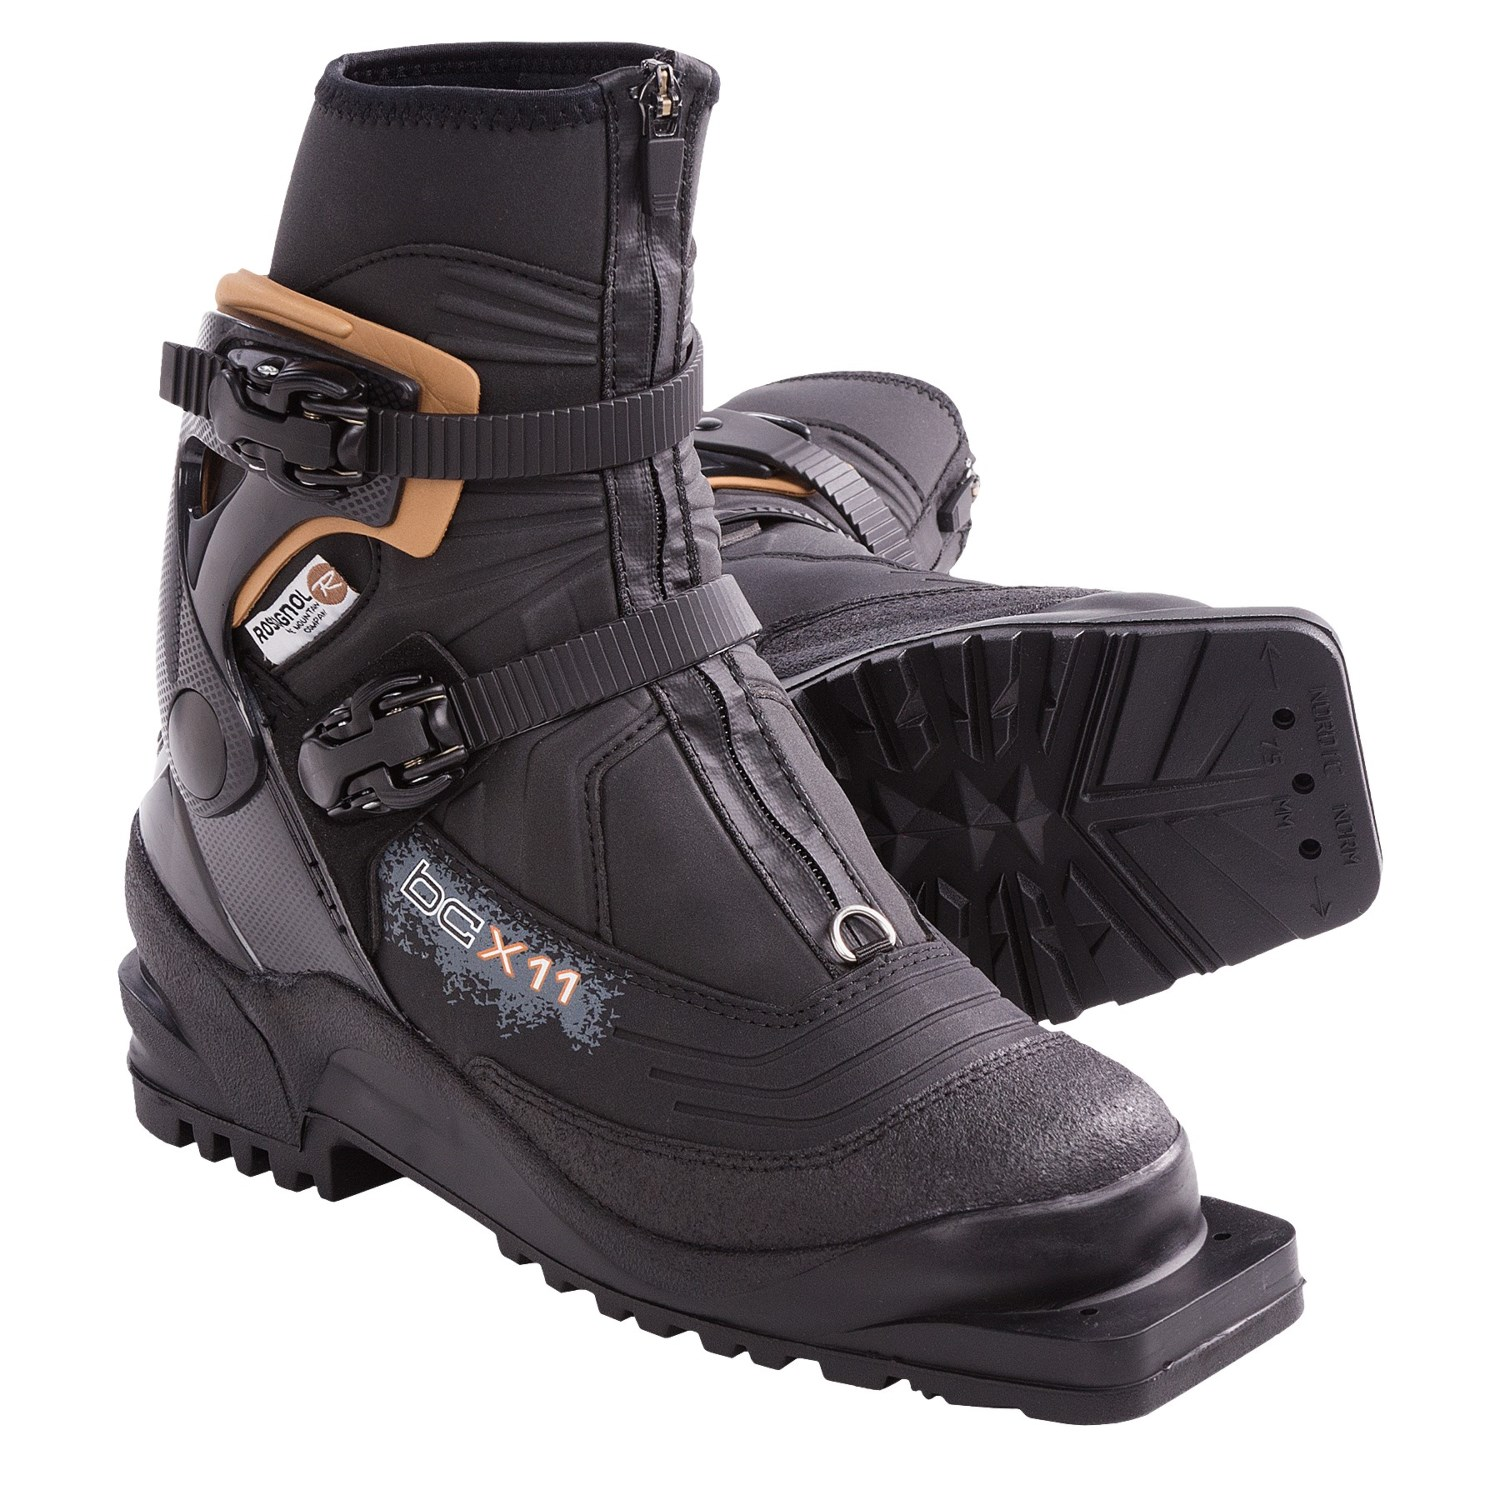 Rossignol Bc X 11backcountry Cross Country Ski Boots 3